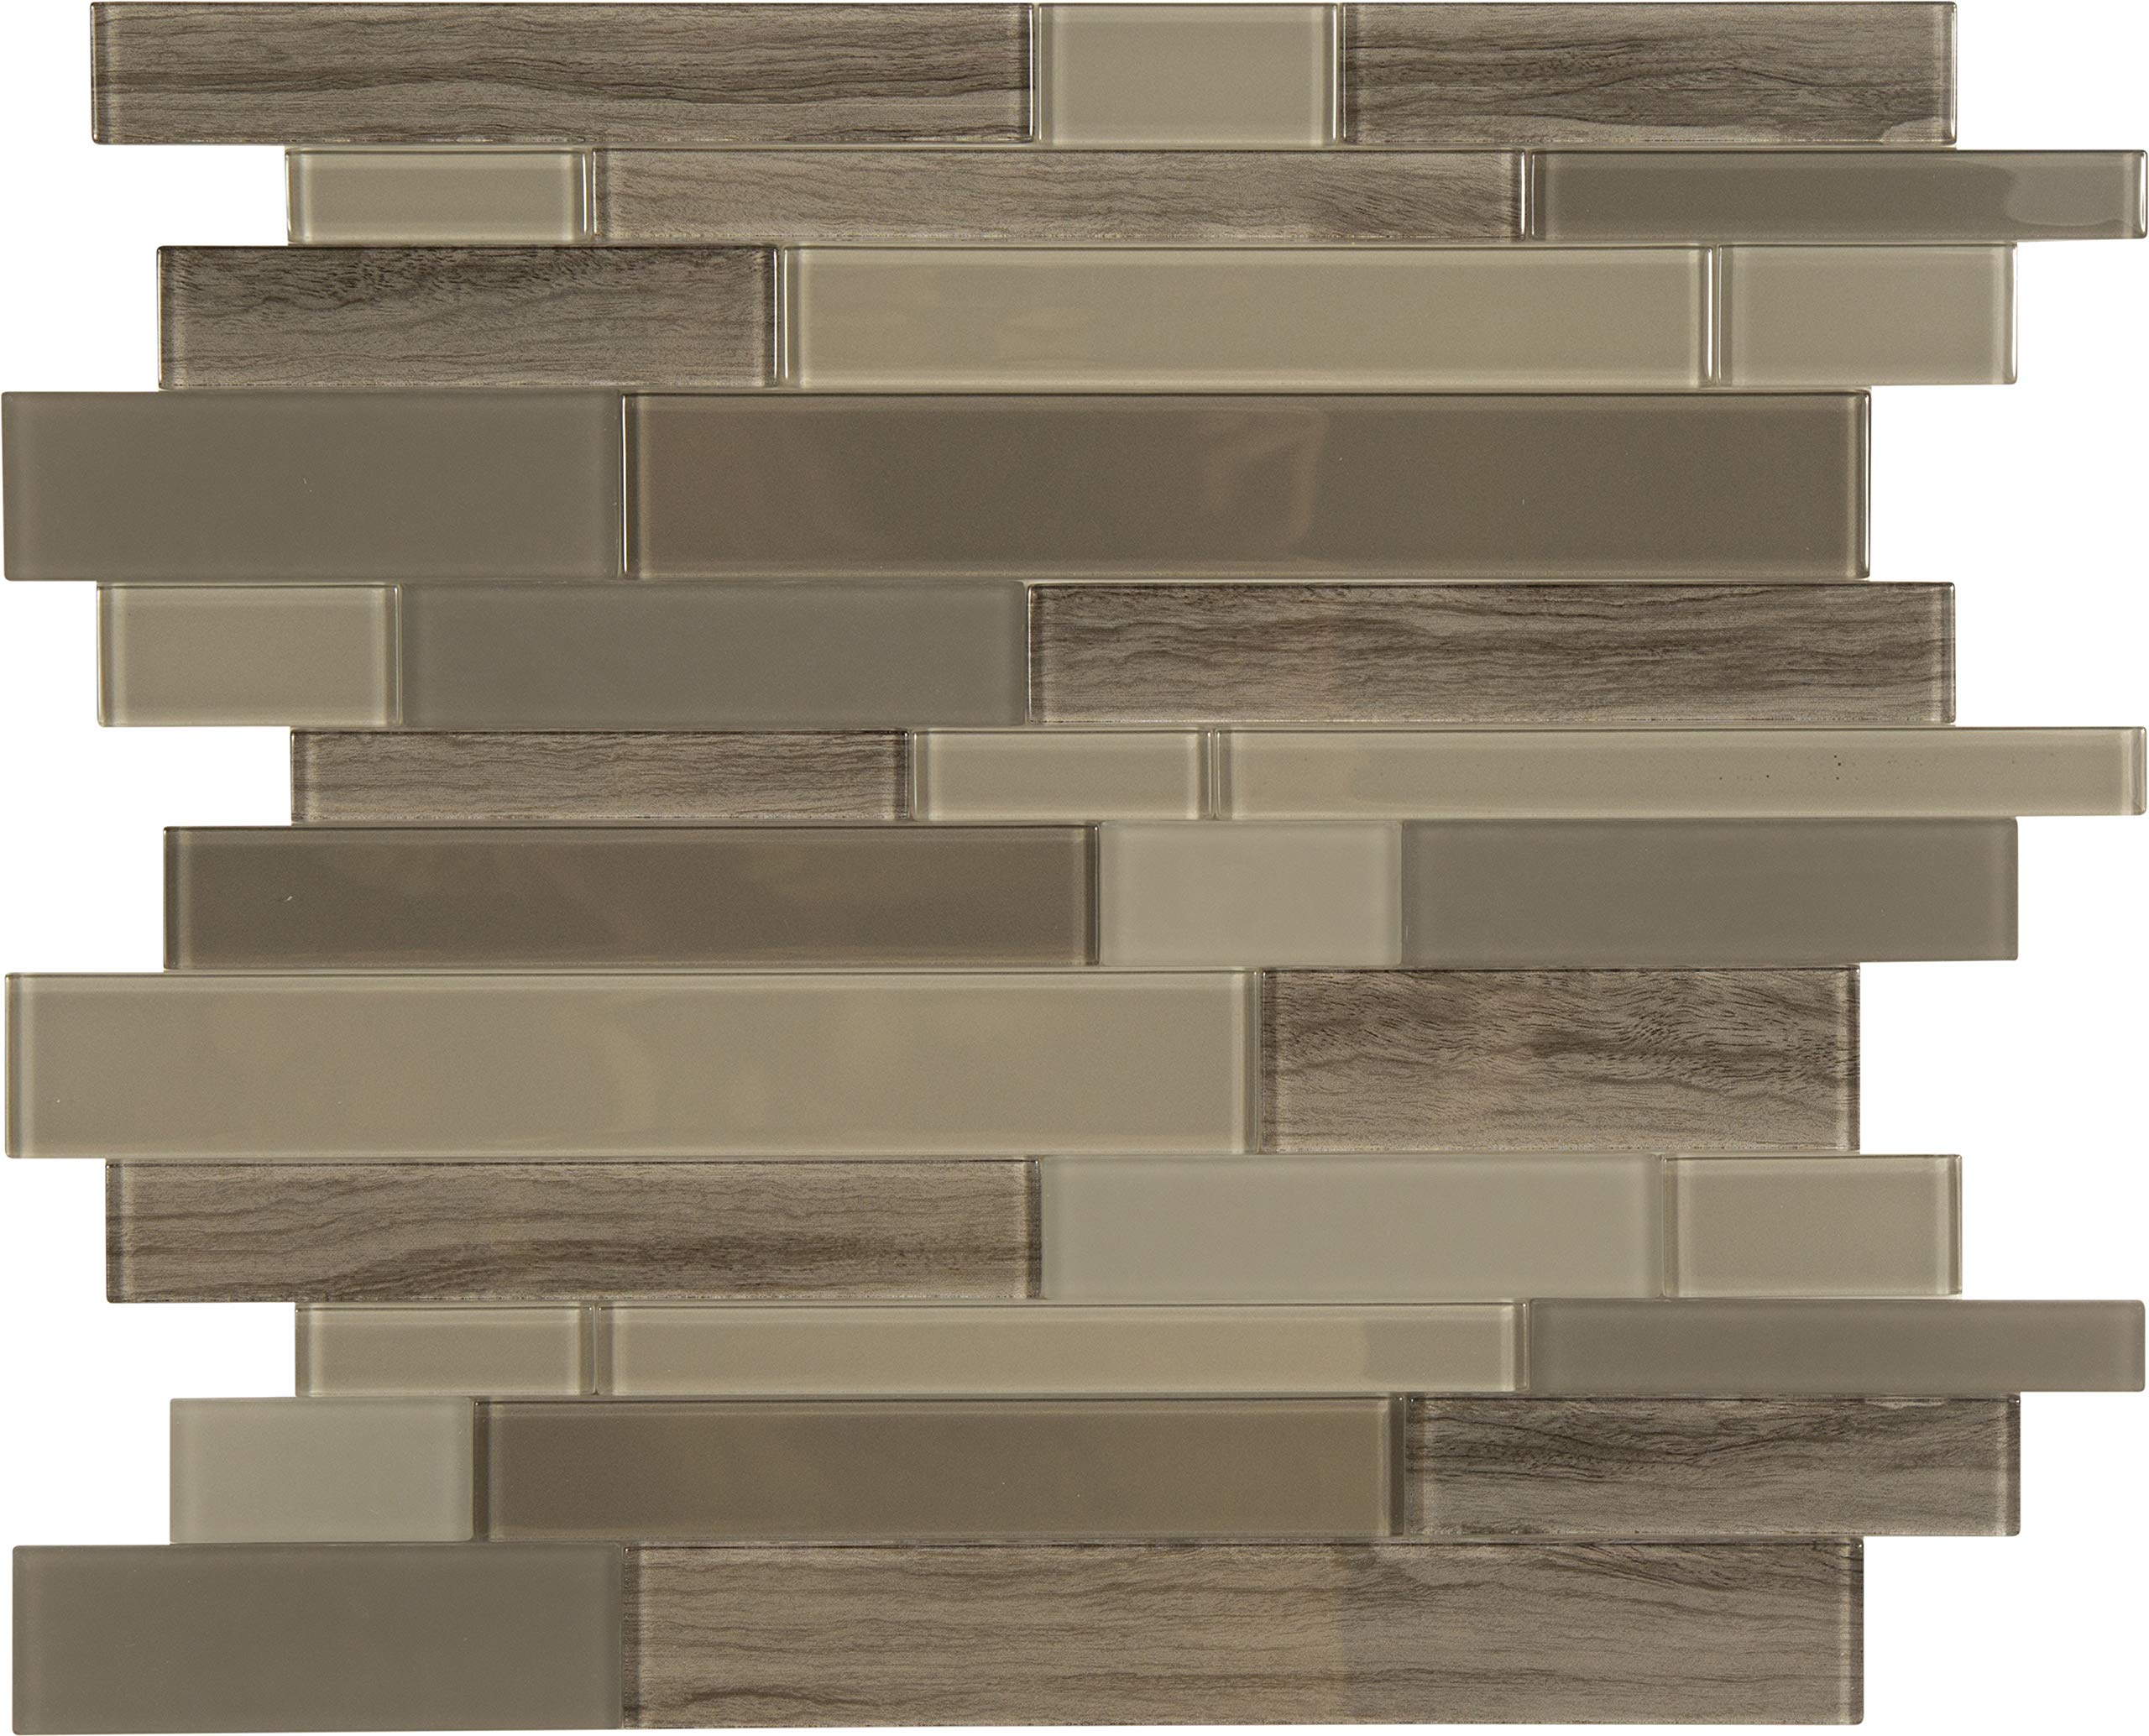 Peel and Stick Glass Backsplash Tiles (Brown Glass Marble Mosaic) - Box of 10 Tiles: 11.4'' X 11.6'' Each